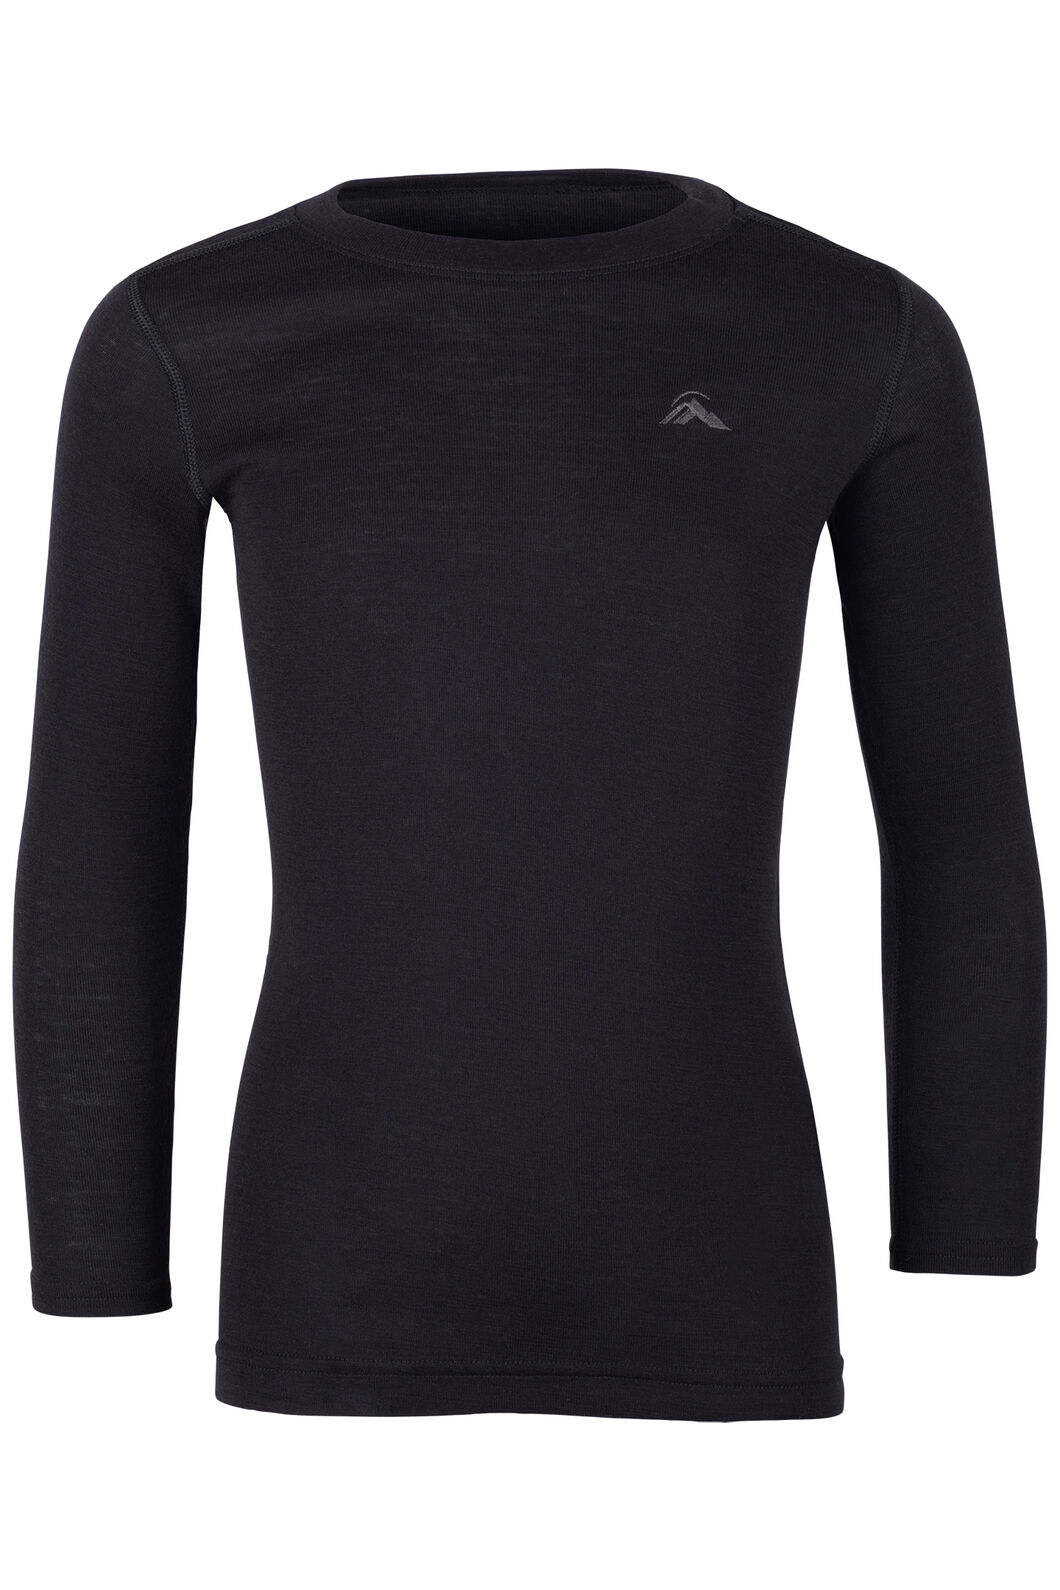 Macpac 220 Merino Long Sleeve Top - Kids', Black, hi-res